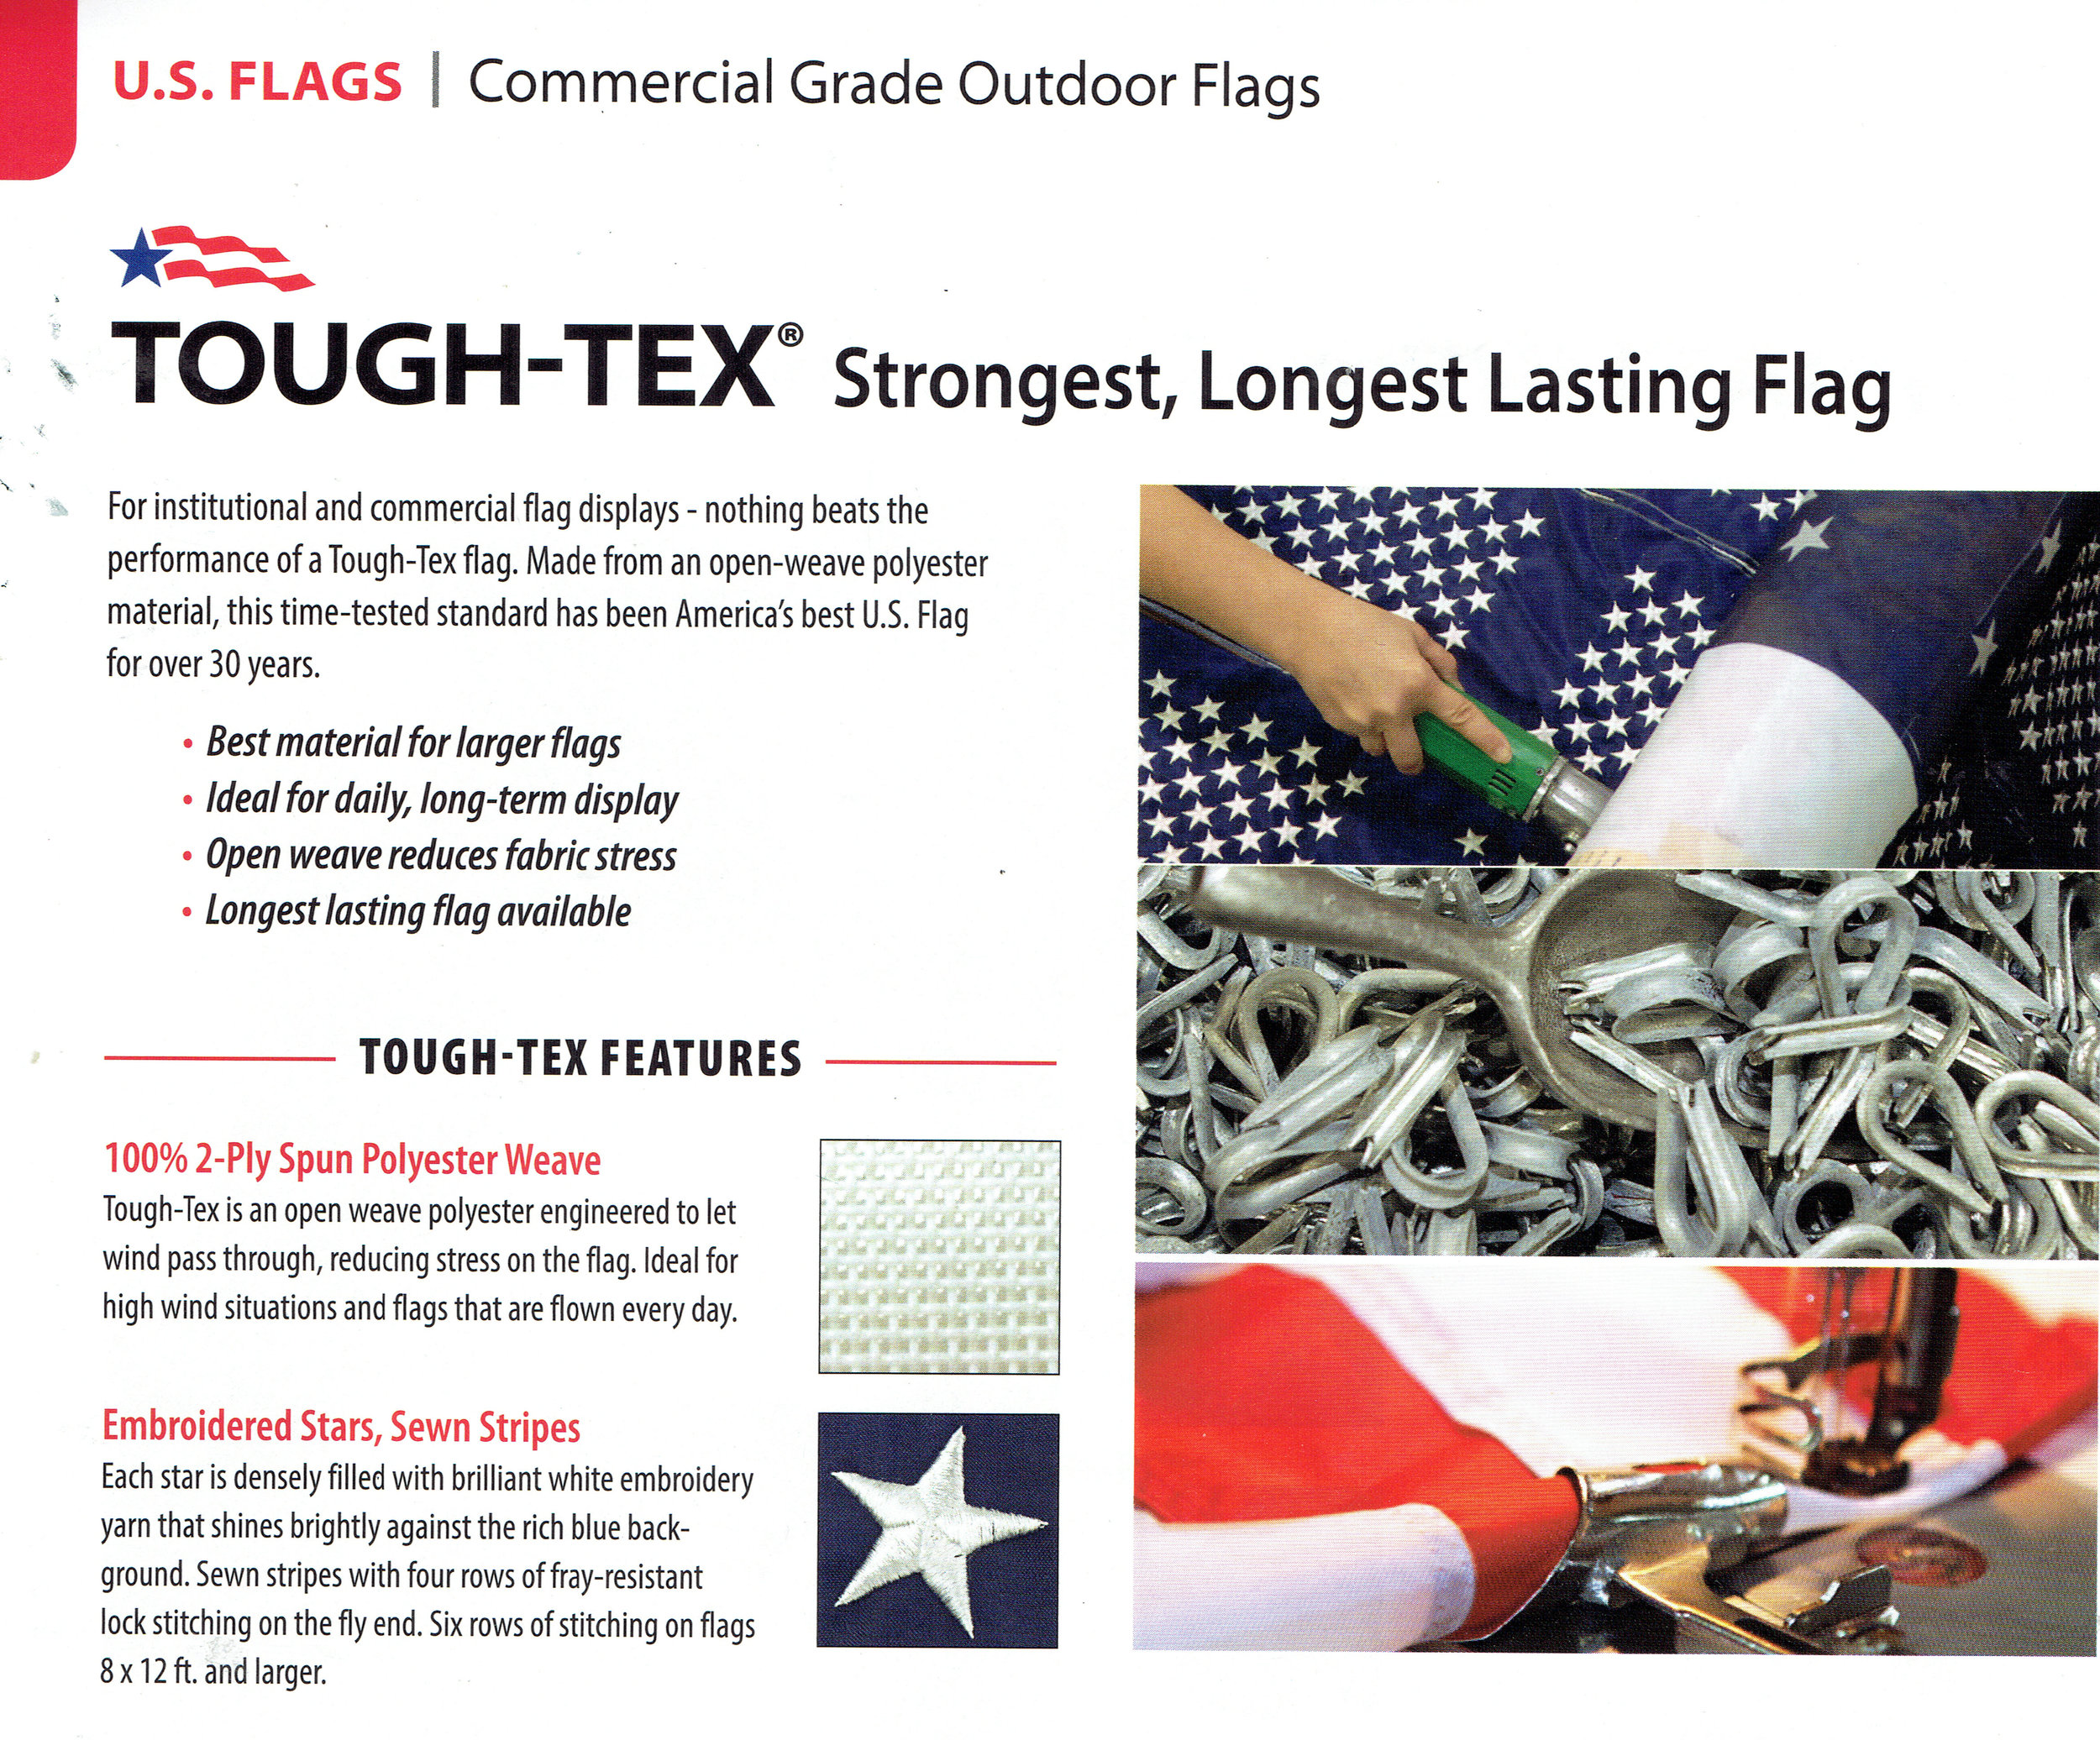 Pennant Shop - 2908 Metairie Road, Metairie, LA 70001Phone:  (504) 837 8420Email:  pennant700@yahoo.comAll size TOUGH TEX FLAGS IN STOCKOFFICIAL ANNIN DISTRIBUTOR